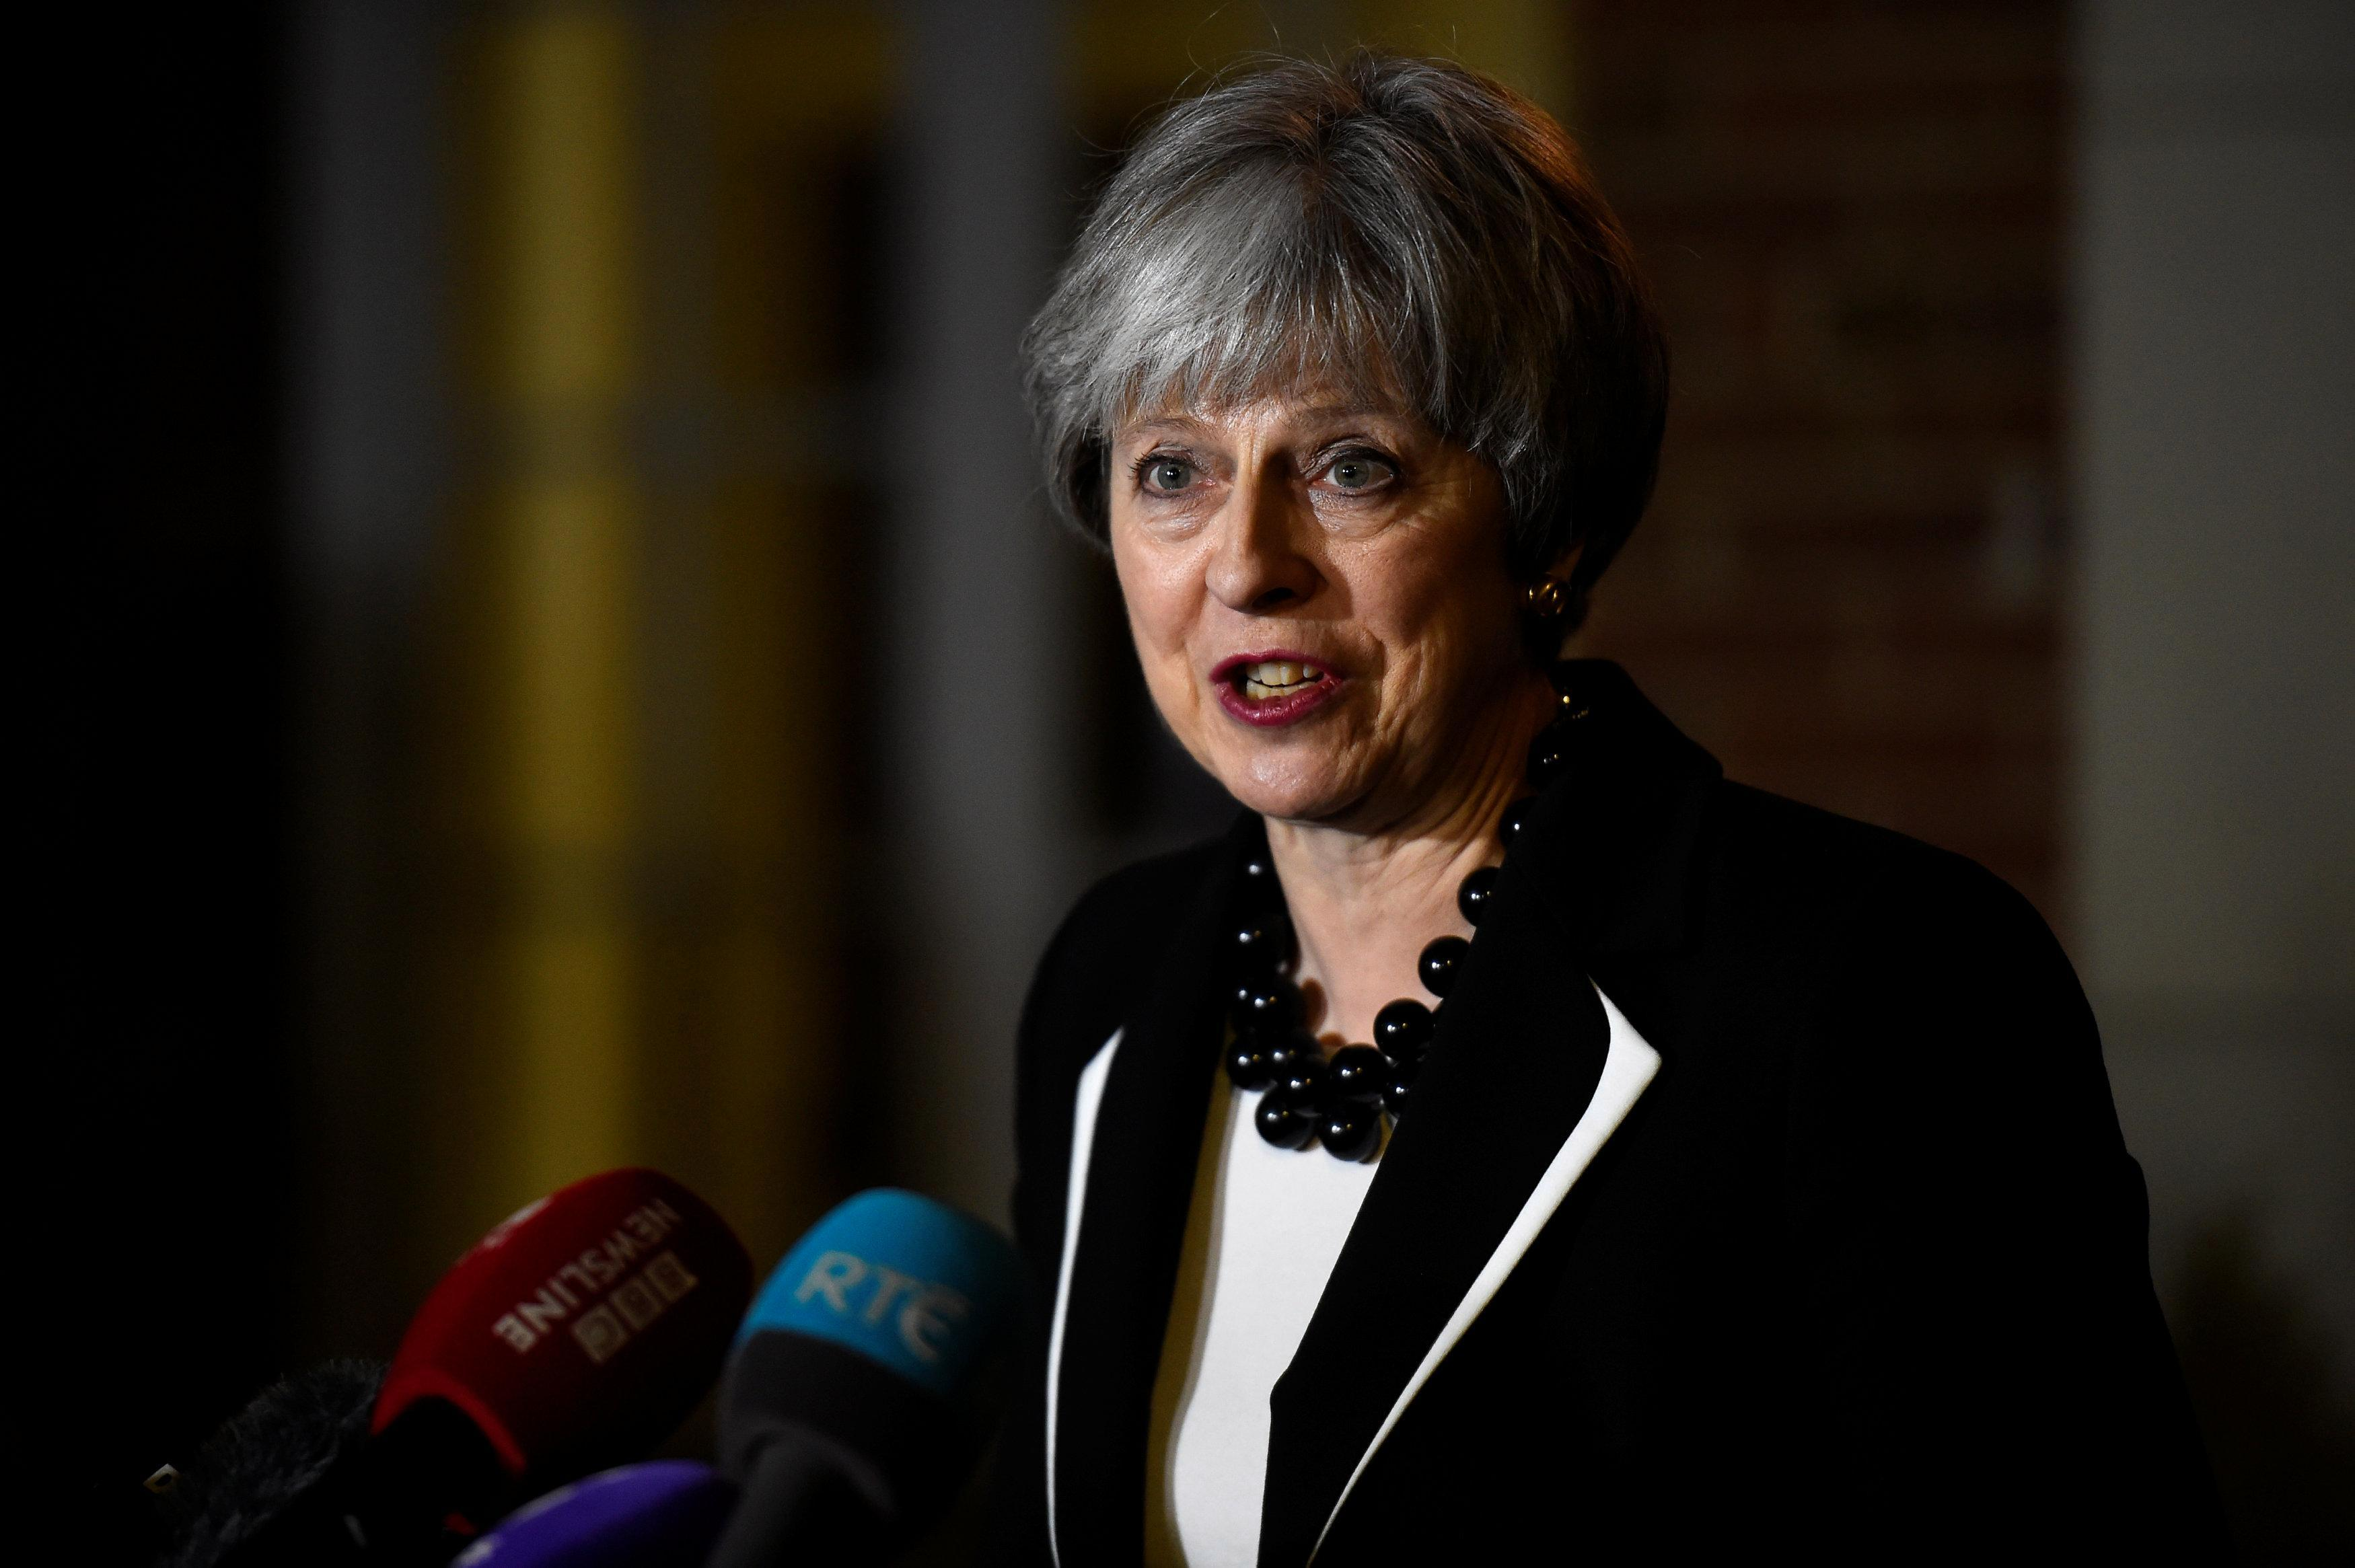 Theresa May humiliated by DUP partners after Northern Ireland government talks collapse after her visit